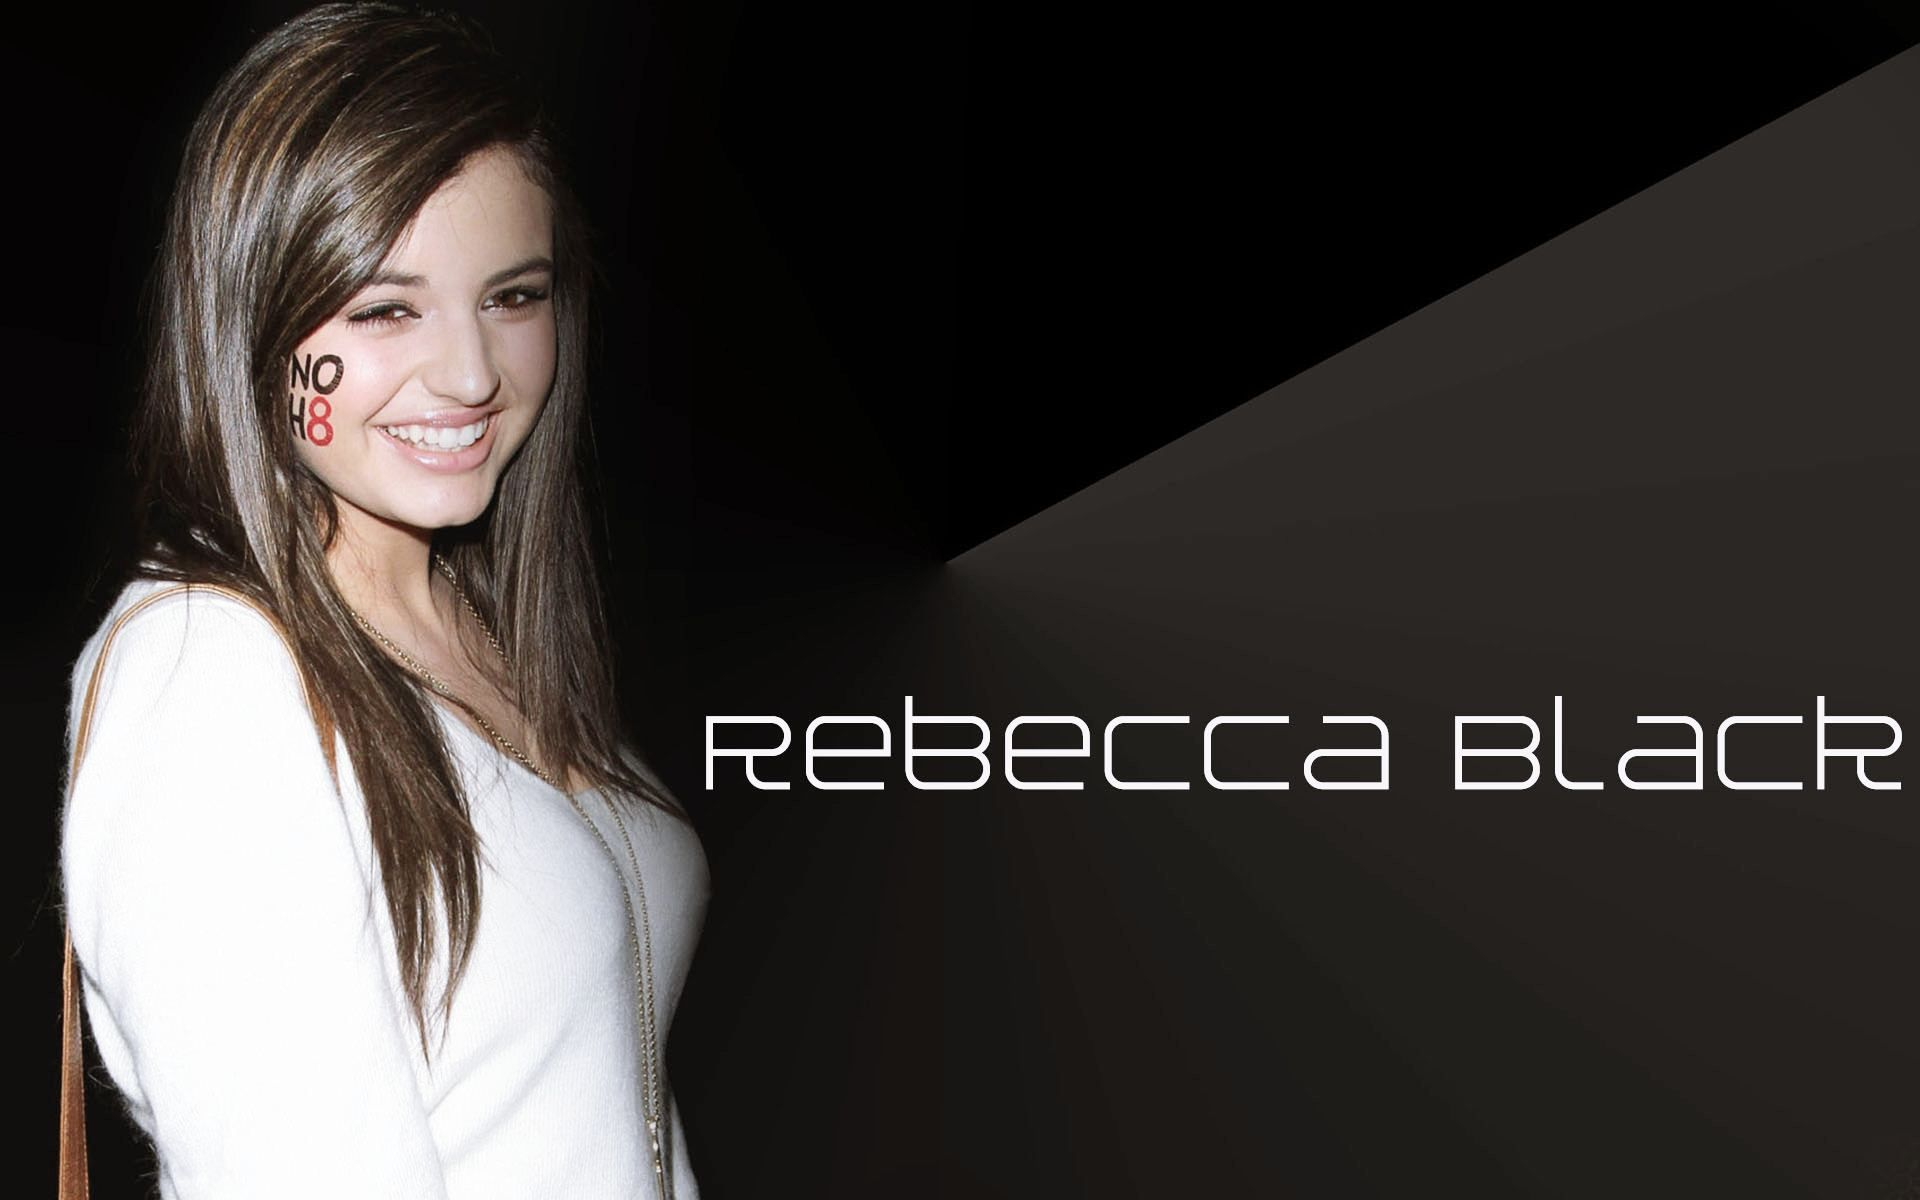 Free Download 100 Pure Rebecca Black Hd Wallpapers Latest